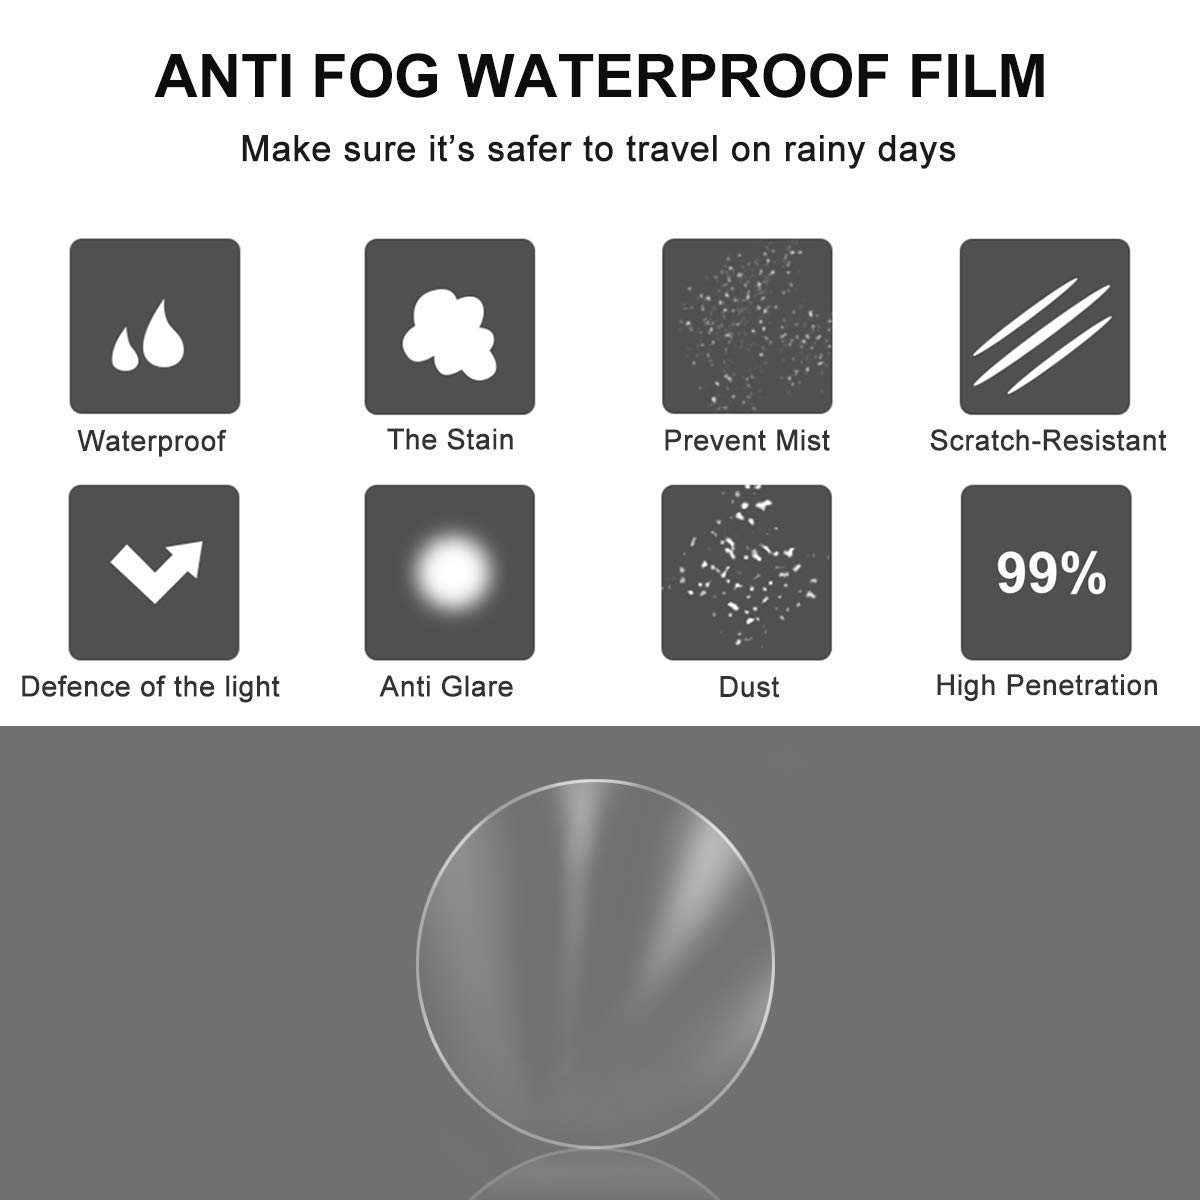 Pefsws 4 Pcs Car Rainproof Rearview Mirror Protective Film, Waterproof Membrane Window Clear Anti-Fog Anti-Glare Anti-Scratch Protective Film Rain Shield Nano Coating for All Universal Vehicles Cars